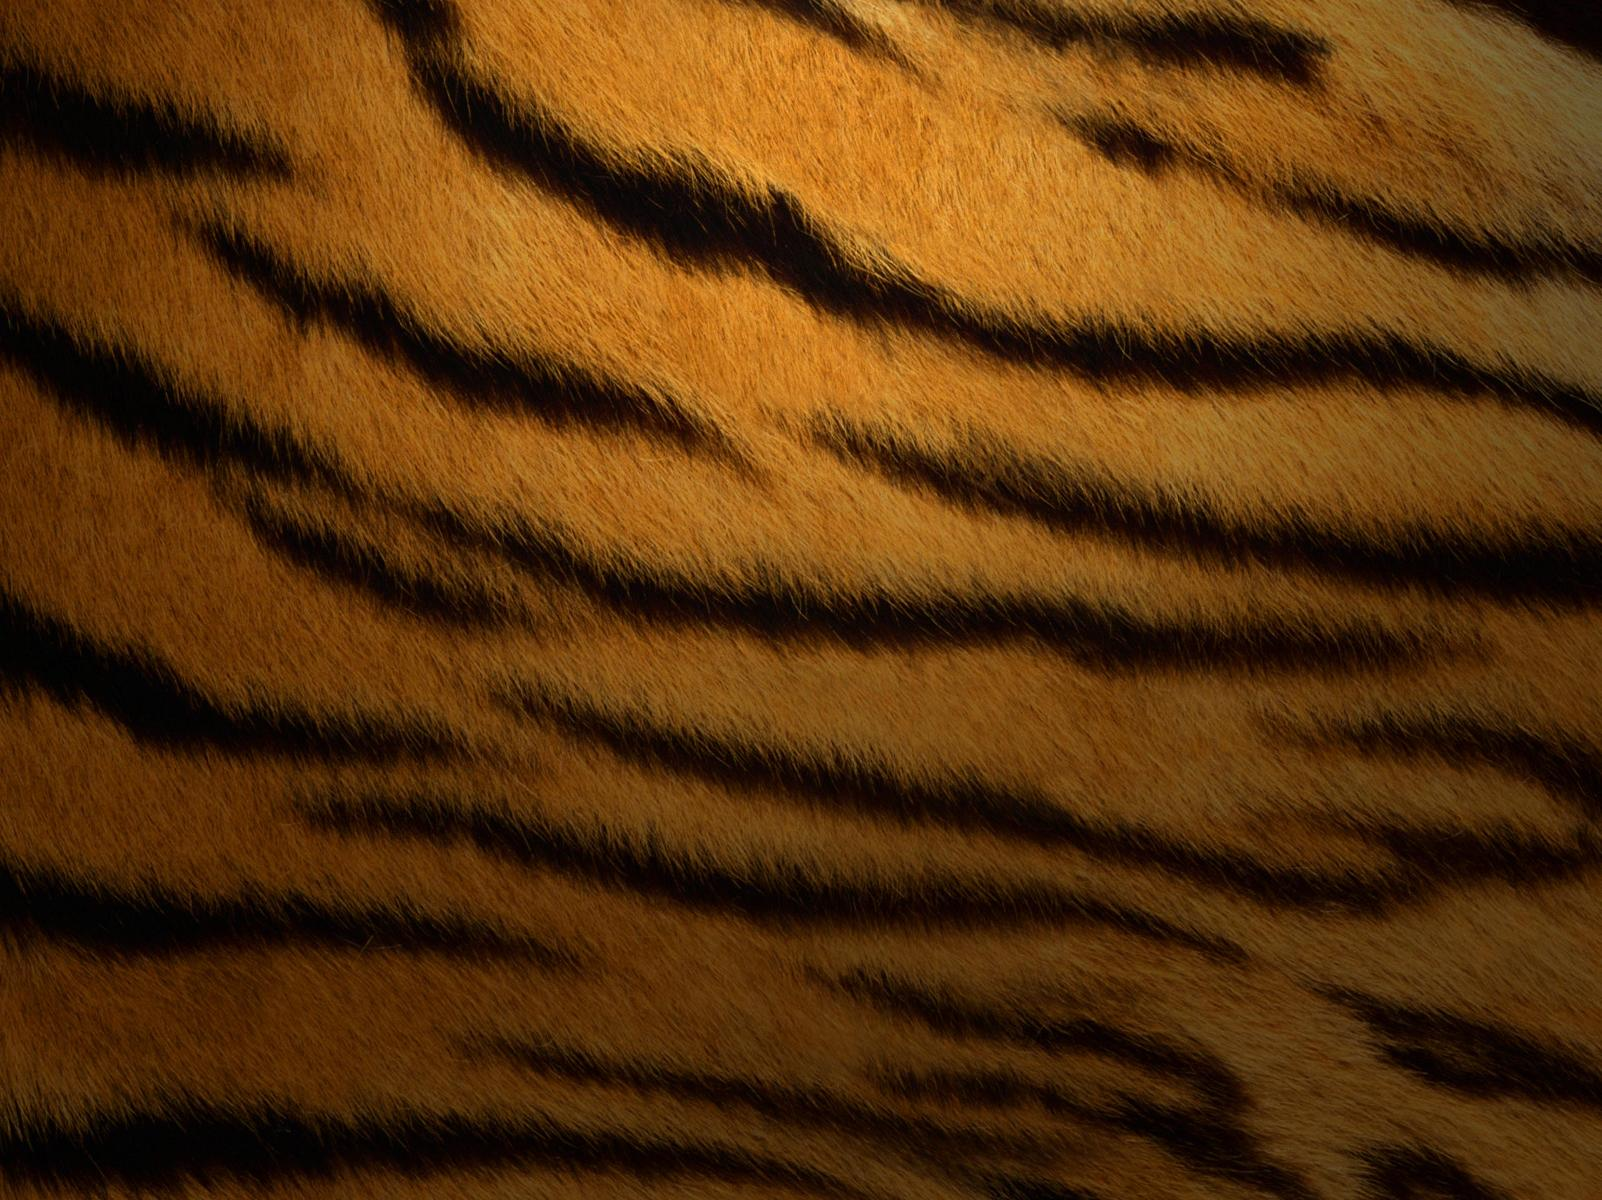 Mac tiger wallpaper